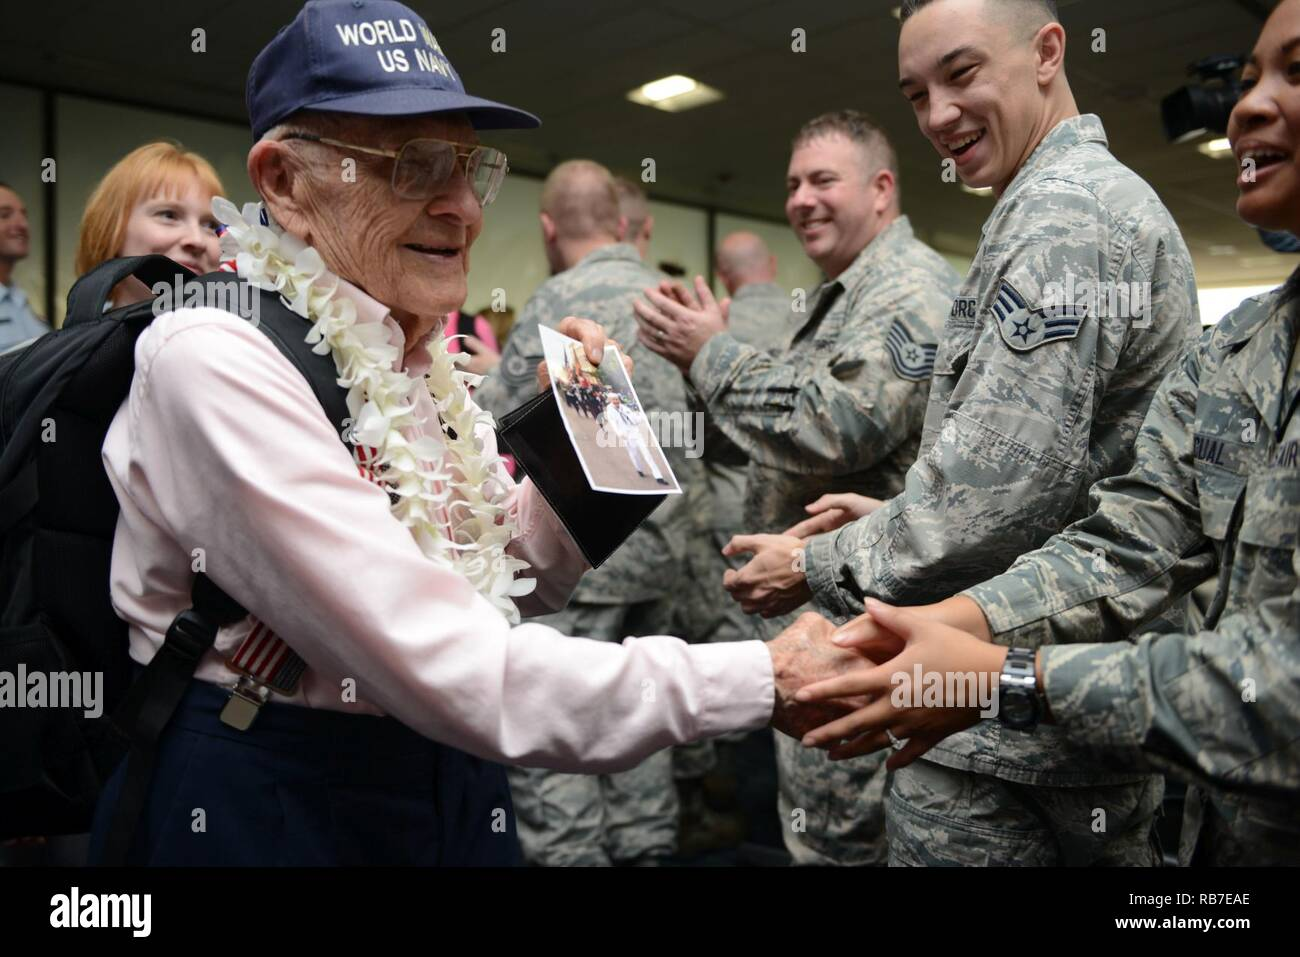 a world war ii veteran shows a photo of himself to several military